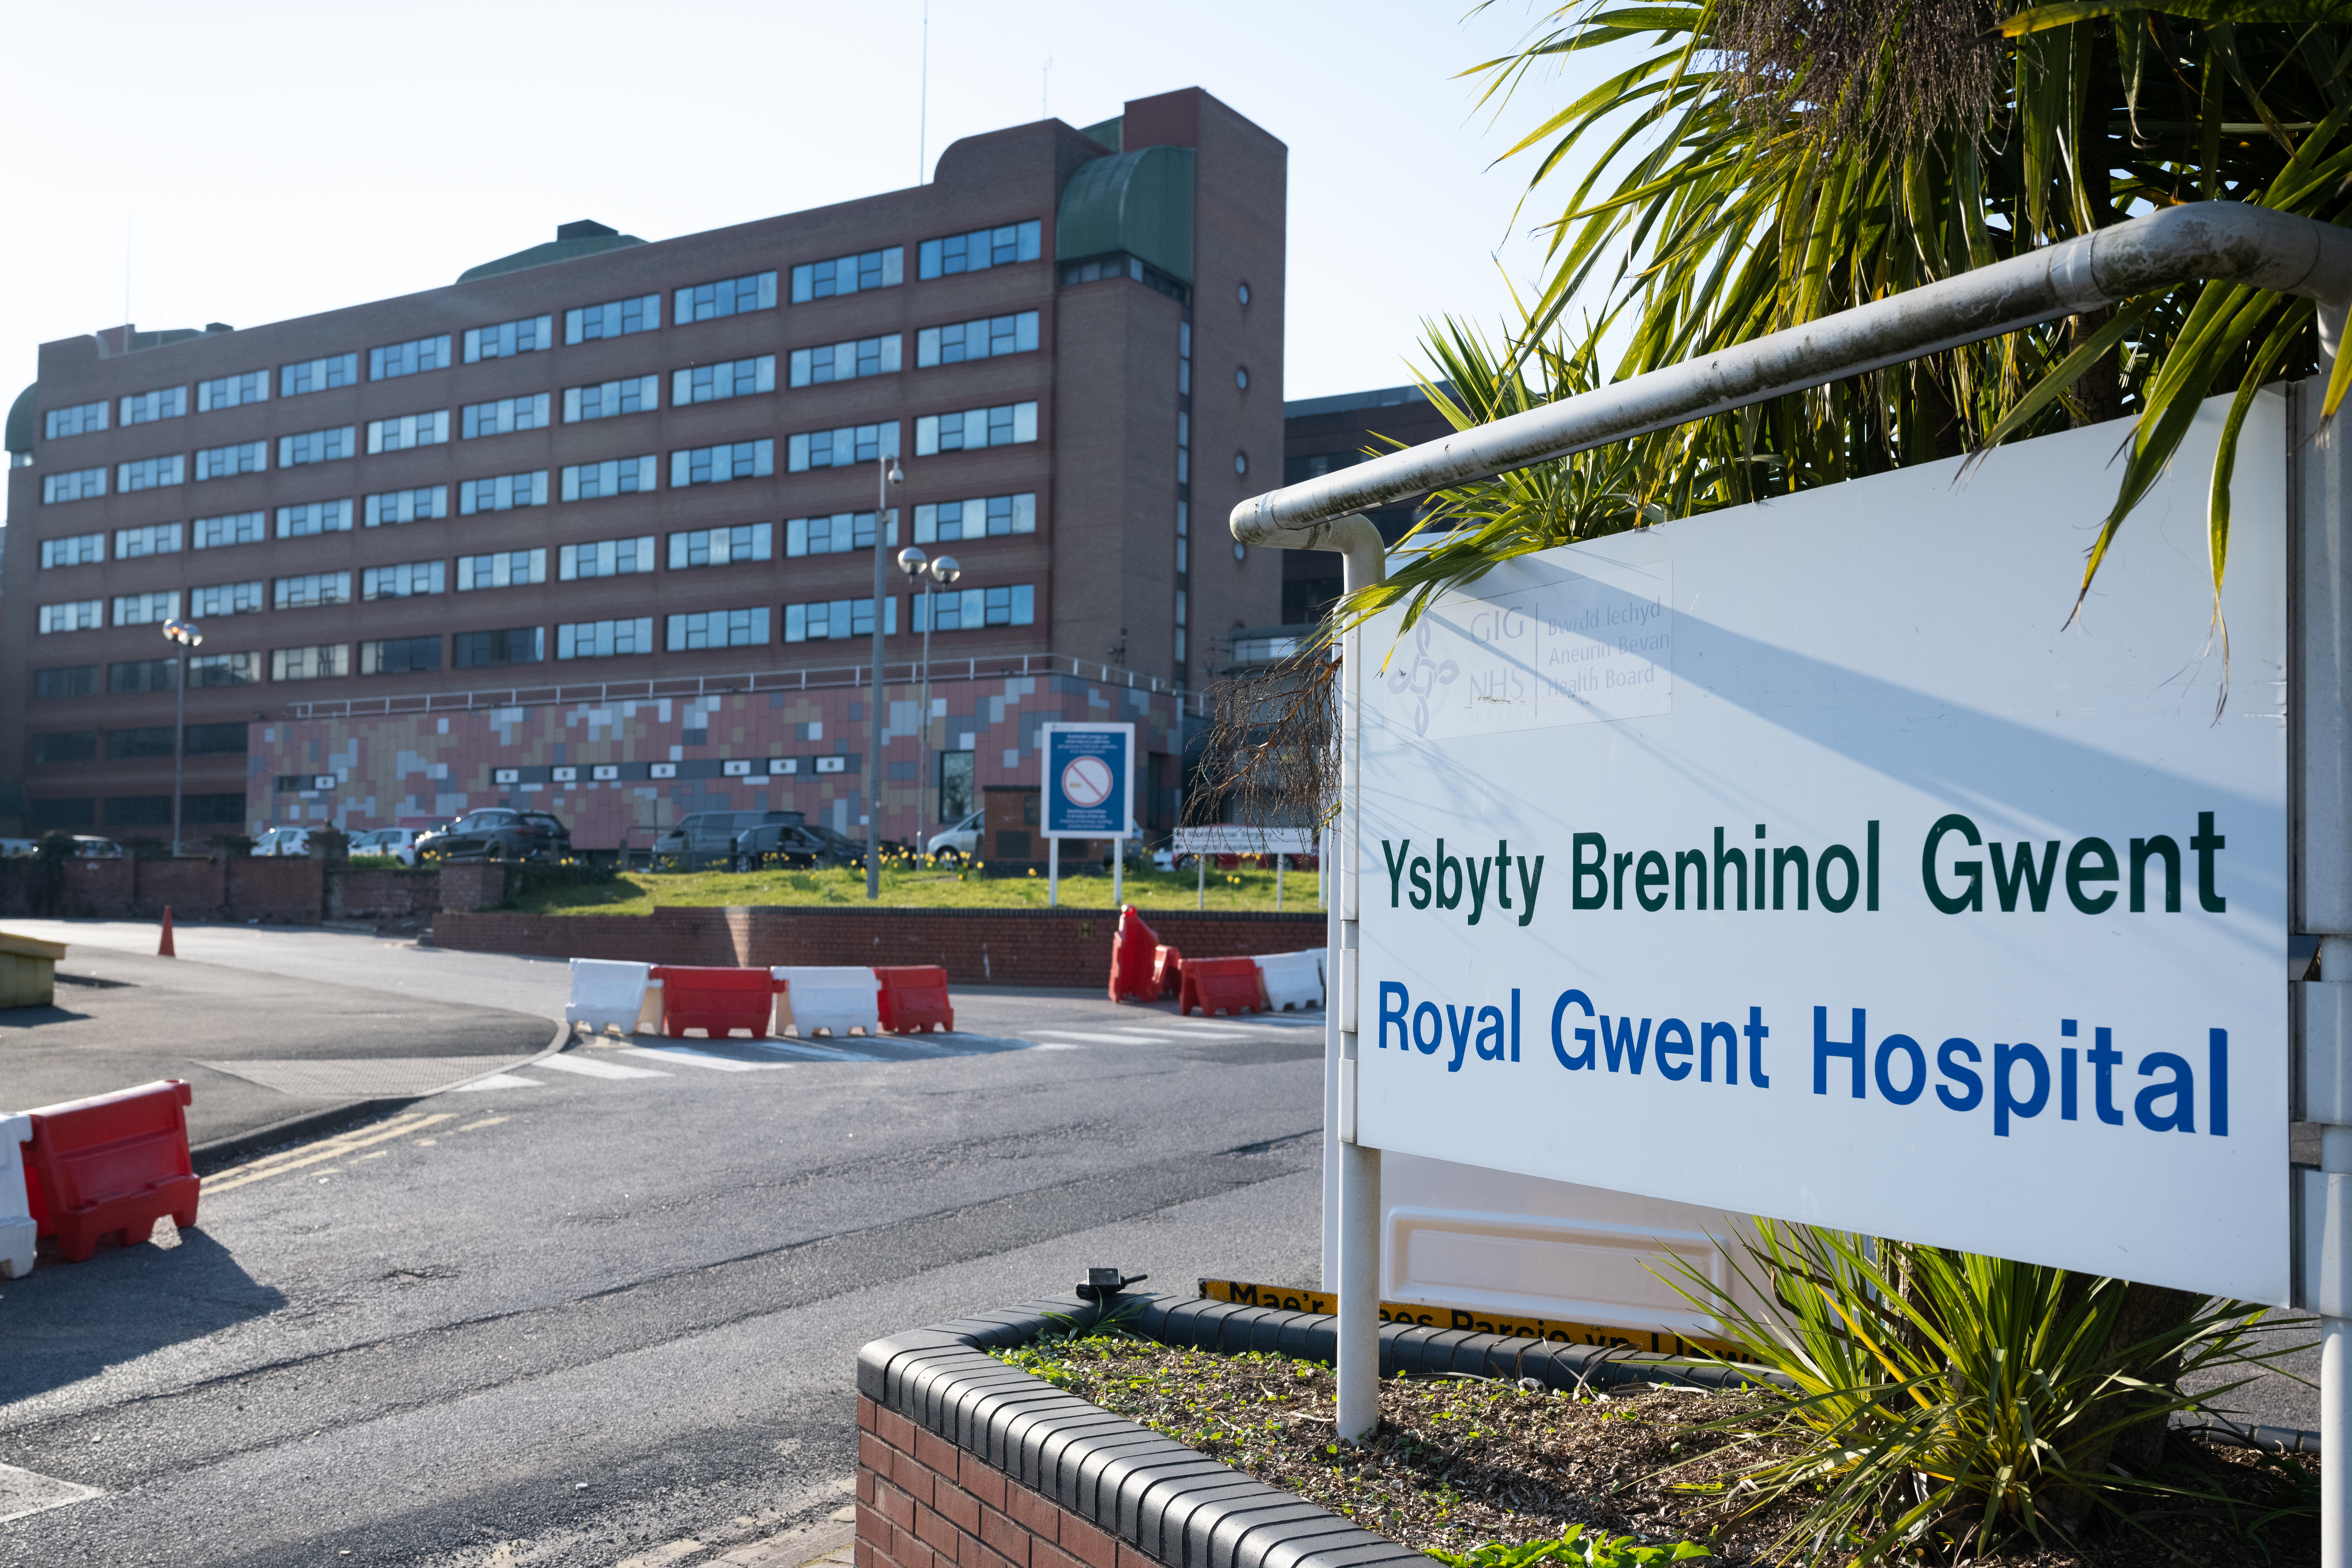 NEWPORT, UNITED KINGDOM - MARCH 26: A general view of the Royal Gwent Hospital on March 26, 2020 in Newport, United Kingdom. The Coronavirus (COVID-19) pandemic has spread to many countries across the world, claiming over 25,000 lives and infecting hundreds of thousands more. (Photo by Matthew Horwood/Getty Images)